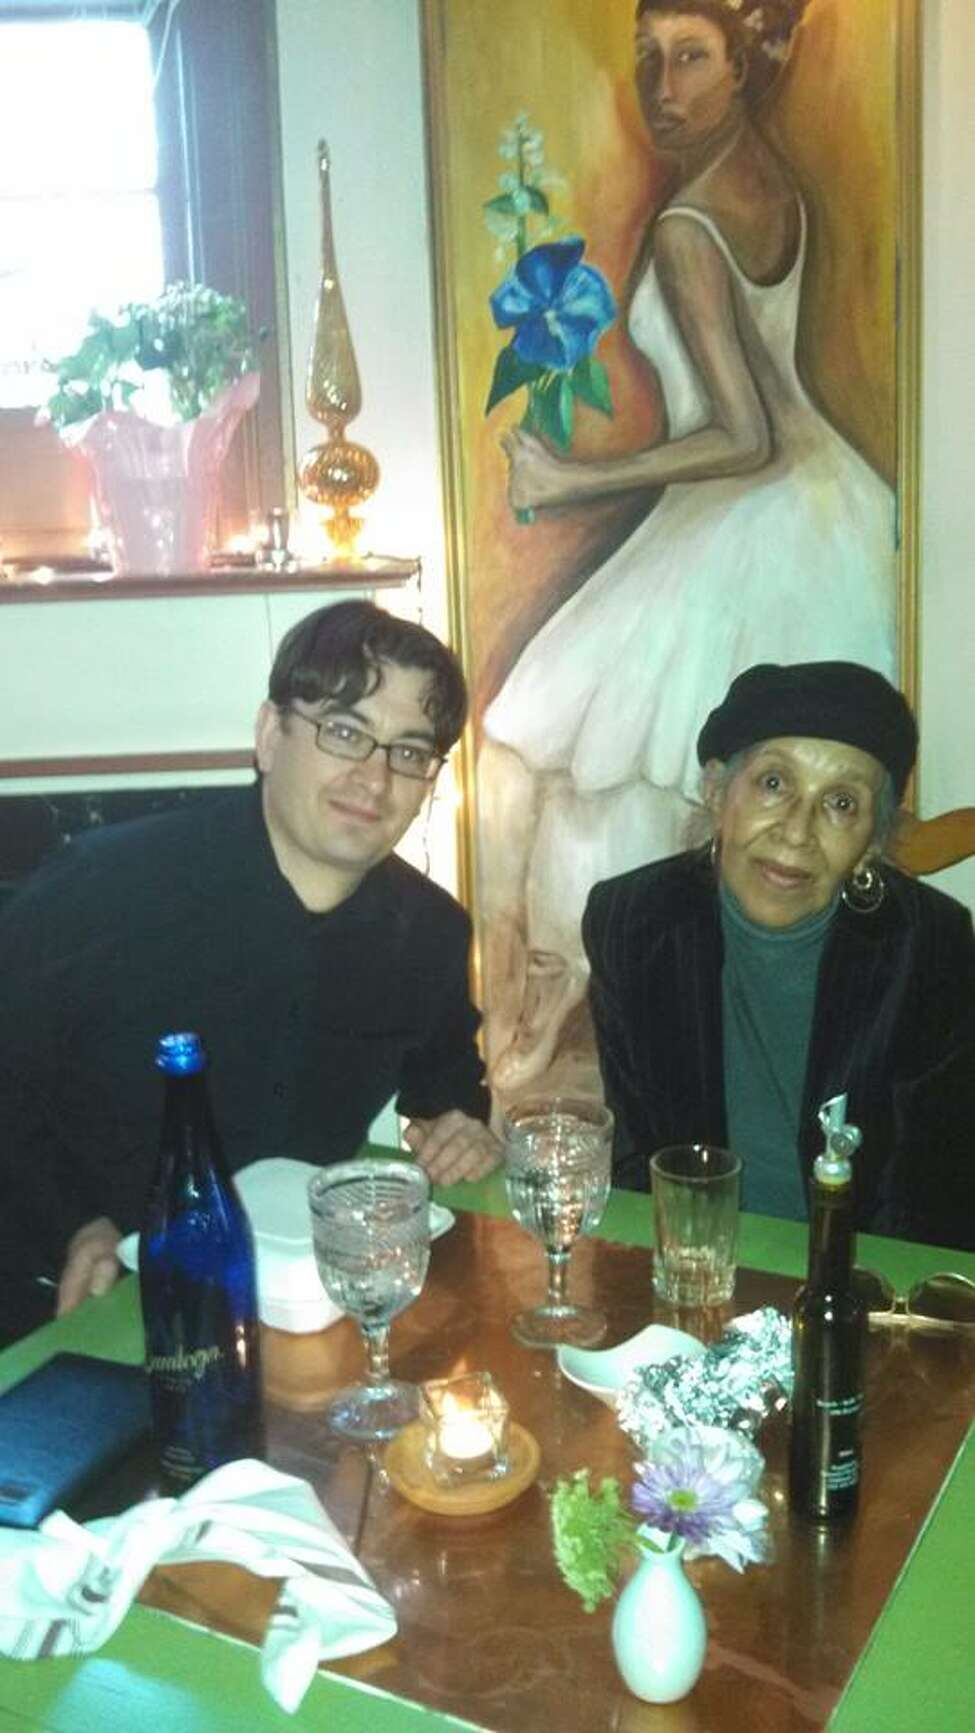 A 2014 photo of Aaron Pedinotti, left, in the Saratoga Springs restaurant his parents bought and named after Mia Mouzon, right, who grew up there. The portrait of Mouzon on the wall was painted by Aaron's sister, Rebecca Pedinotti. (Photo provided by Aaron Pedinotti)